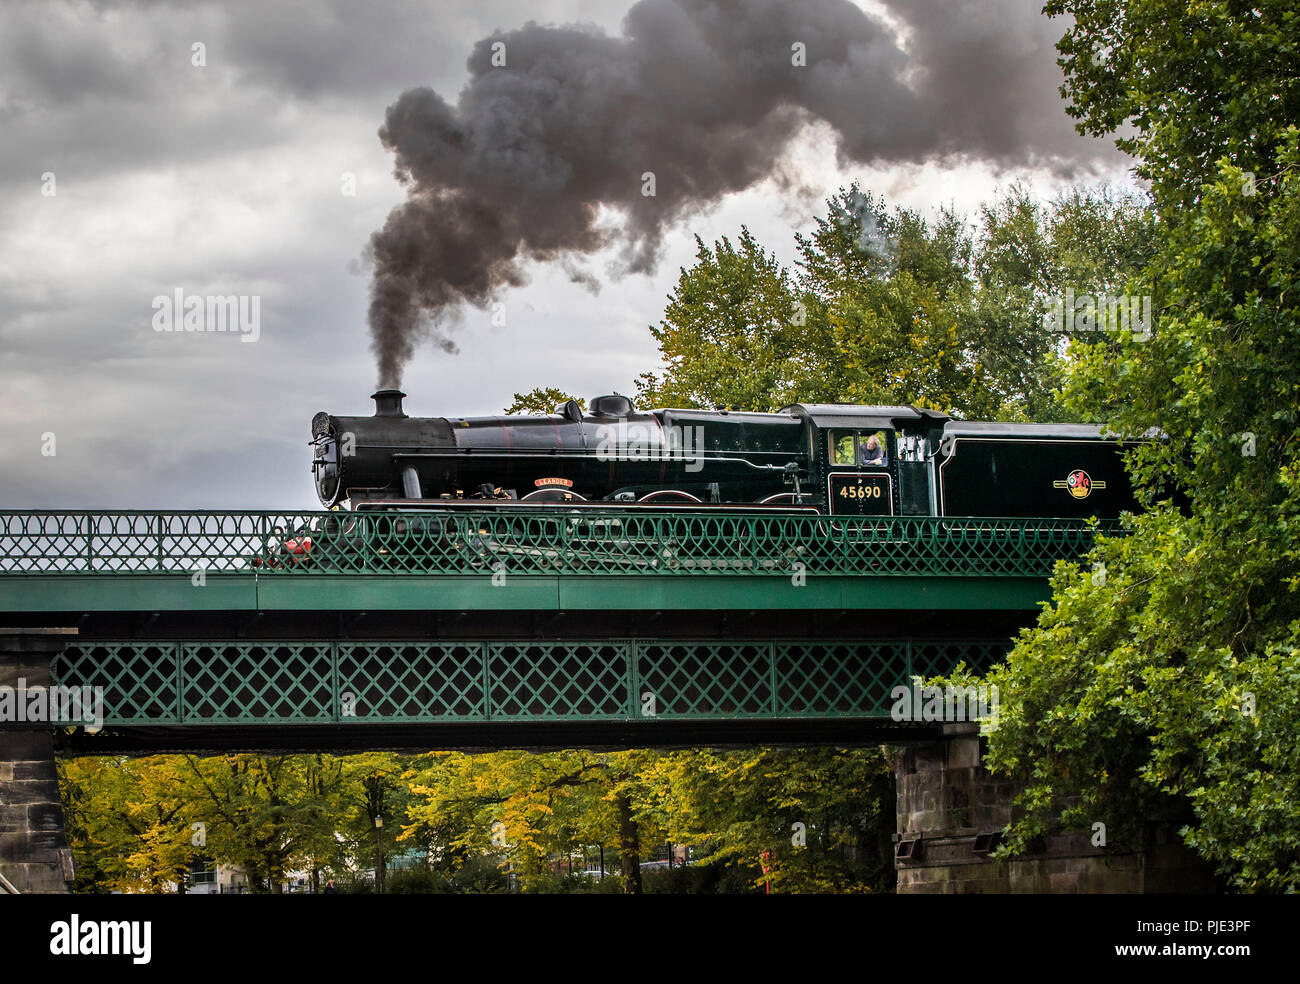 The 45690 Leander steam locomotive hauling The Scarborough Spa Express over the River Ouse in York, as the trees begin to change colour ahead of Autumn. - Stock Image